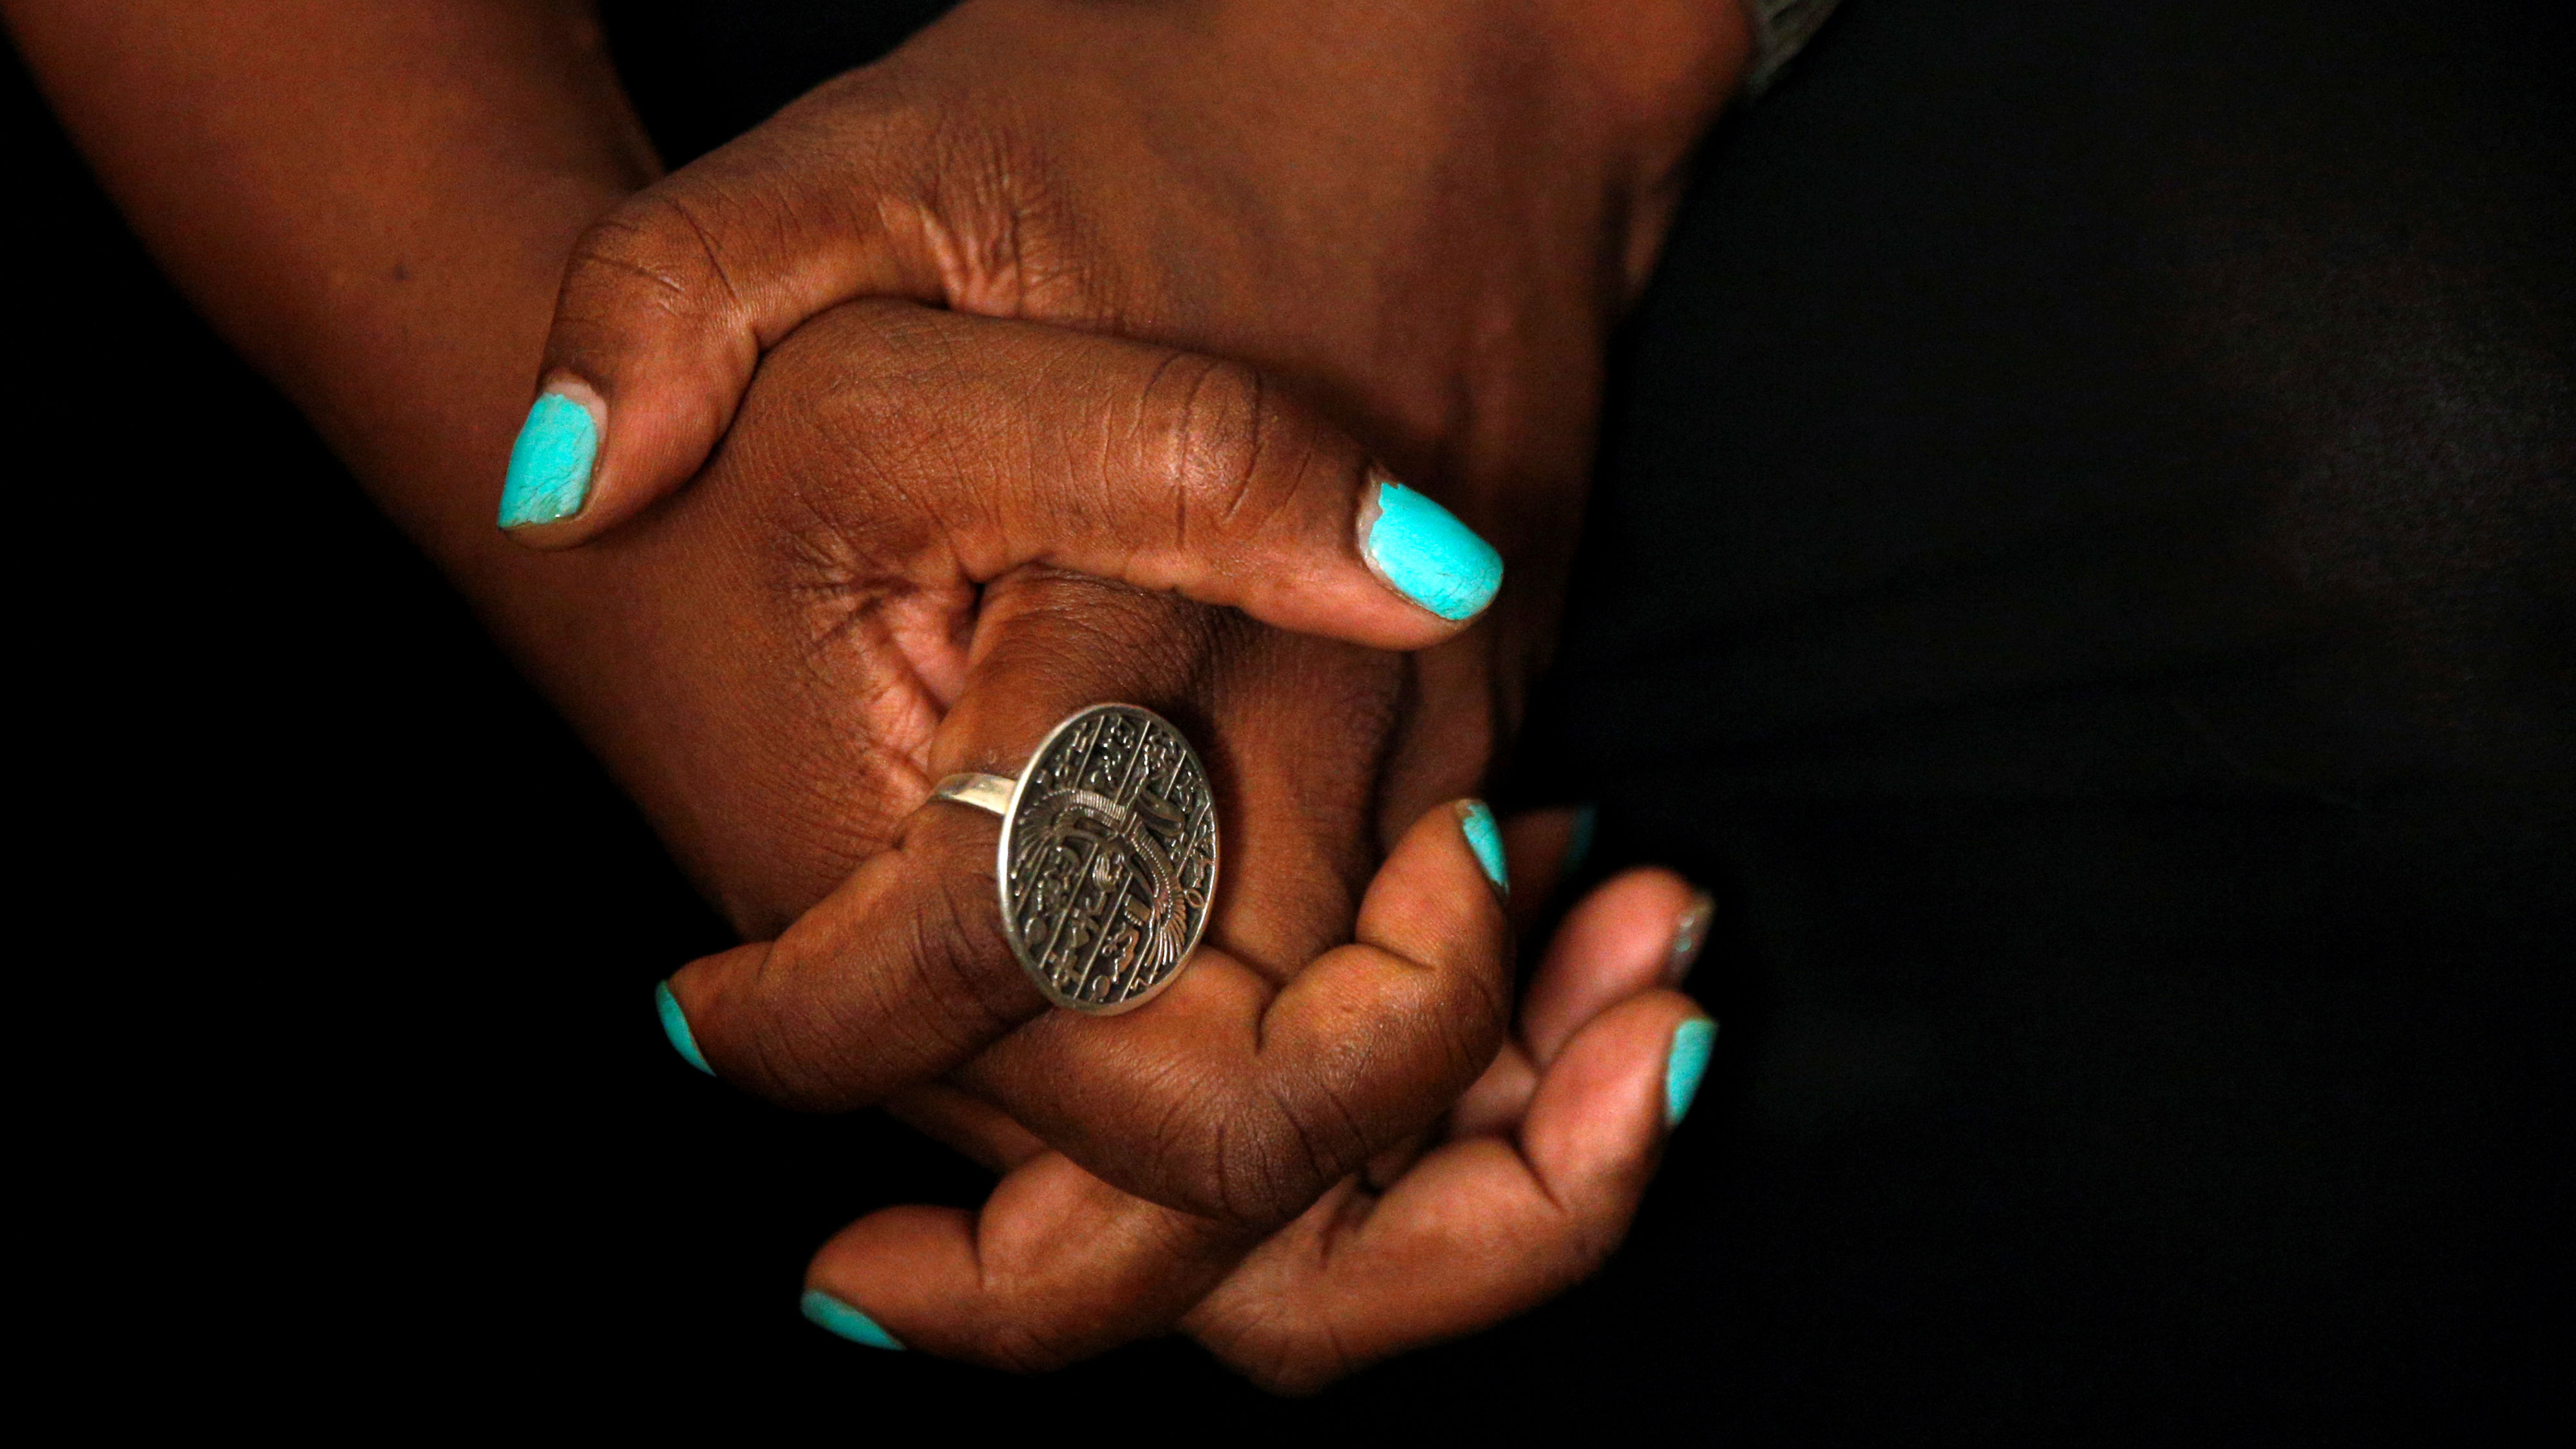 Tanya Walker, a 53-year-old transgender woman, activist and advocate, clinches her hand together during an interview at her apartment in New York City, U.S. September 7, 2016. Picture taken September 7, 2016.